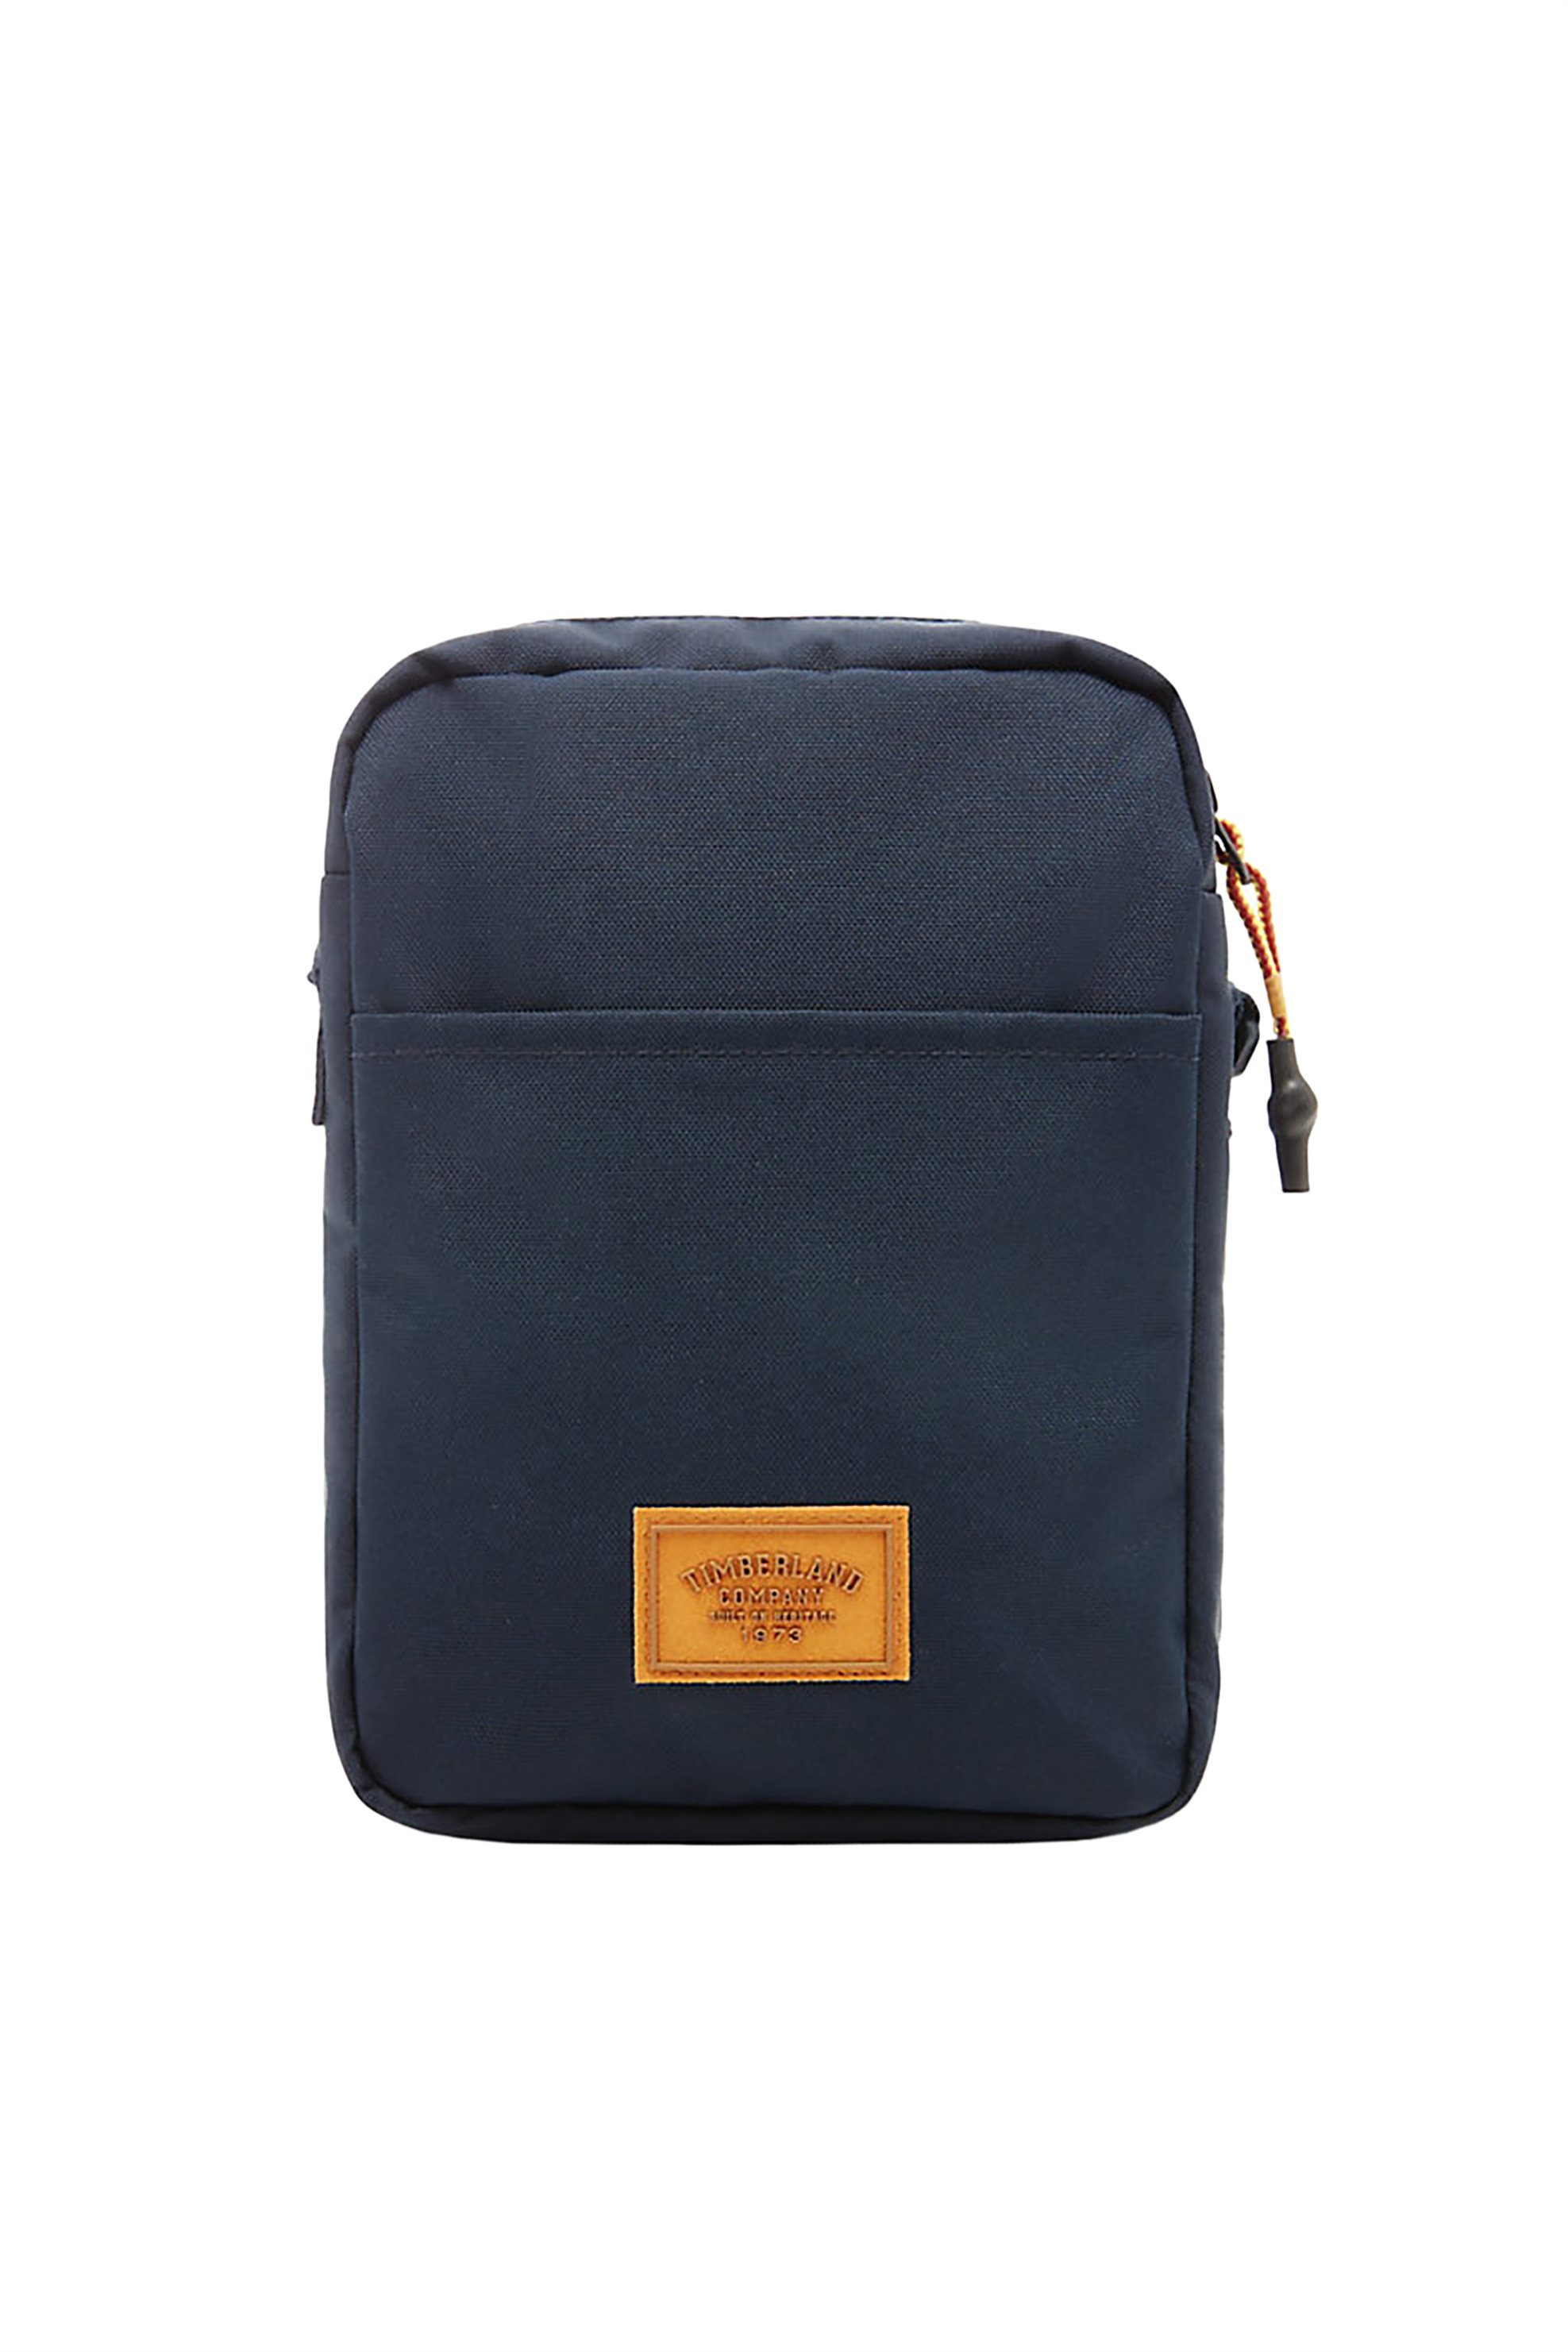 a956027015 Timberland ανδρικό τσαντάκι Small Items Bag - TB0A1CYN4331 -.